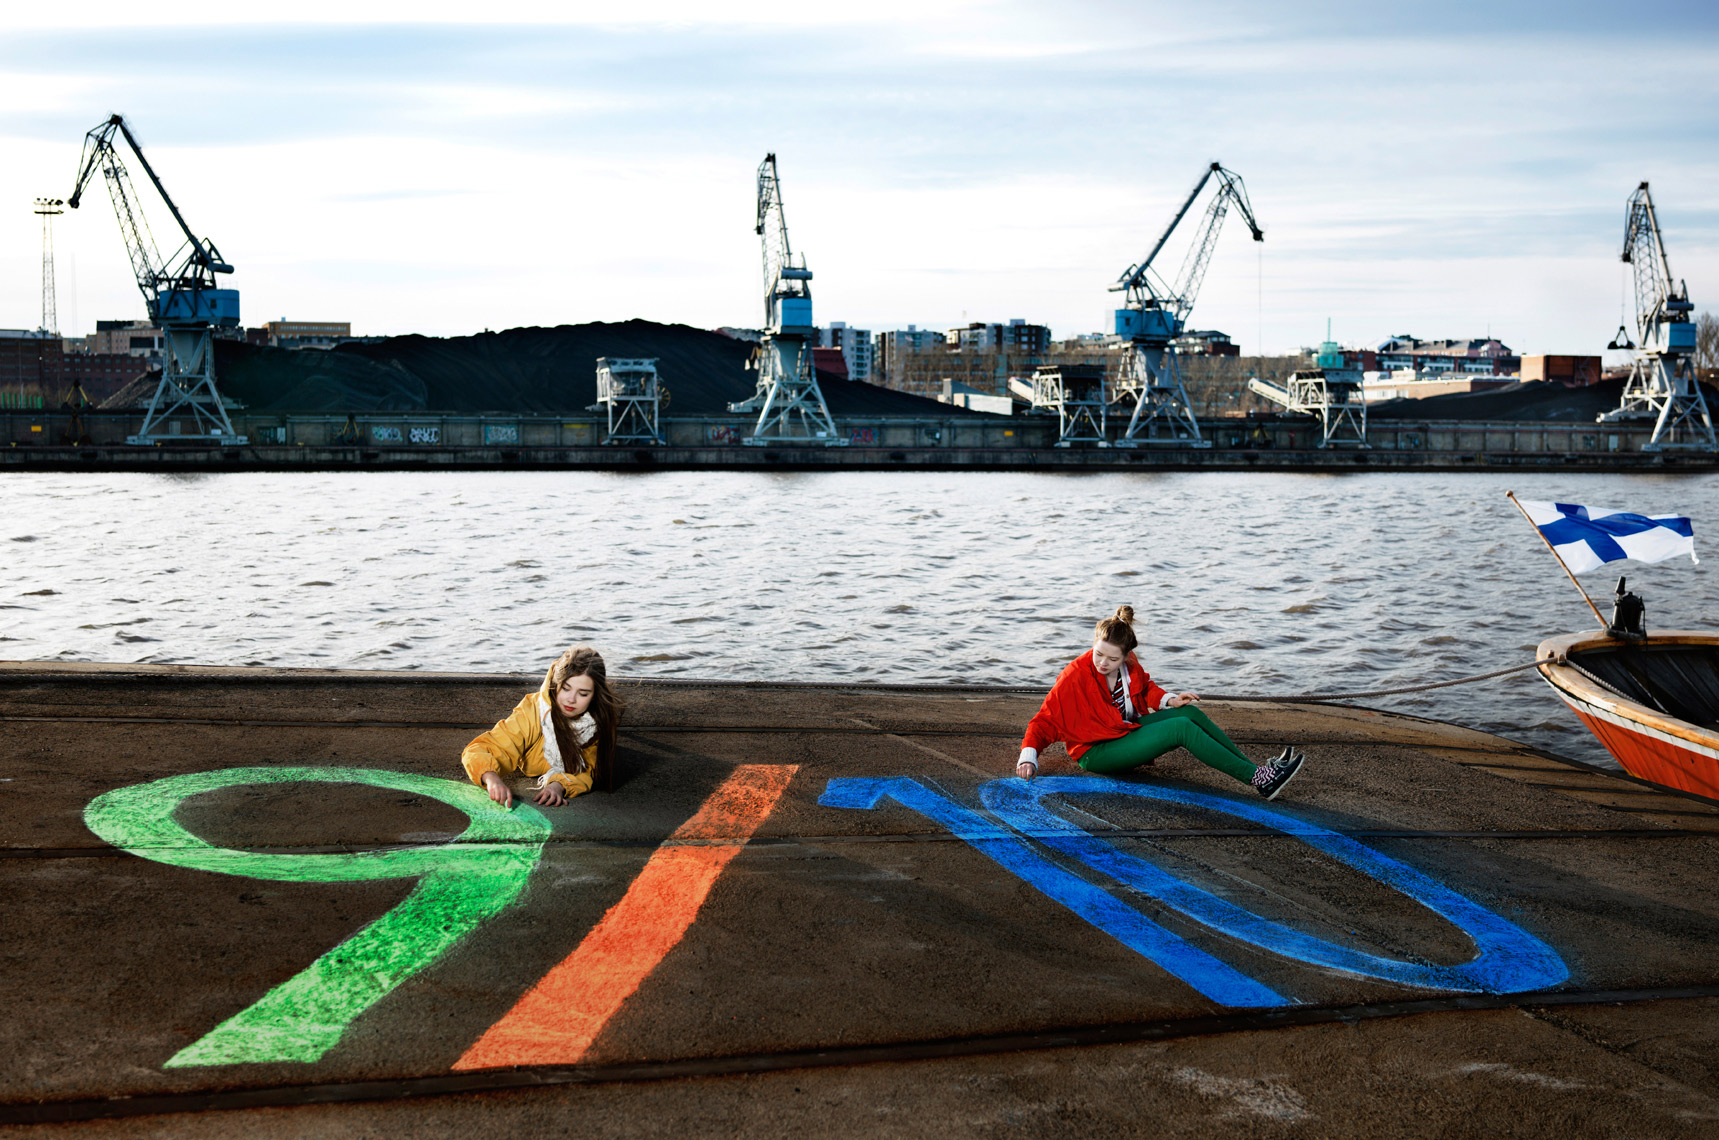 Promo & Campaign Photos for WWF Finland // Photographer: Aki-Pekka Sinikoski